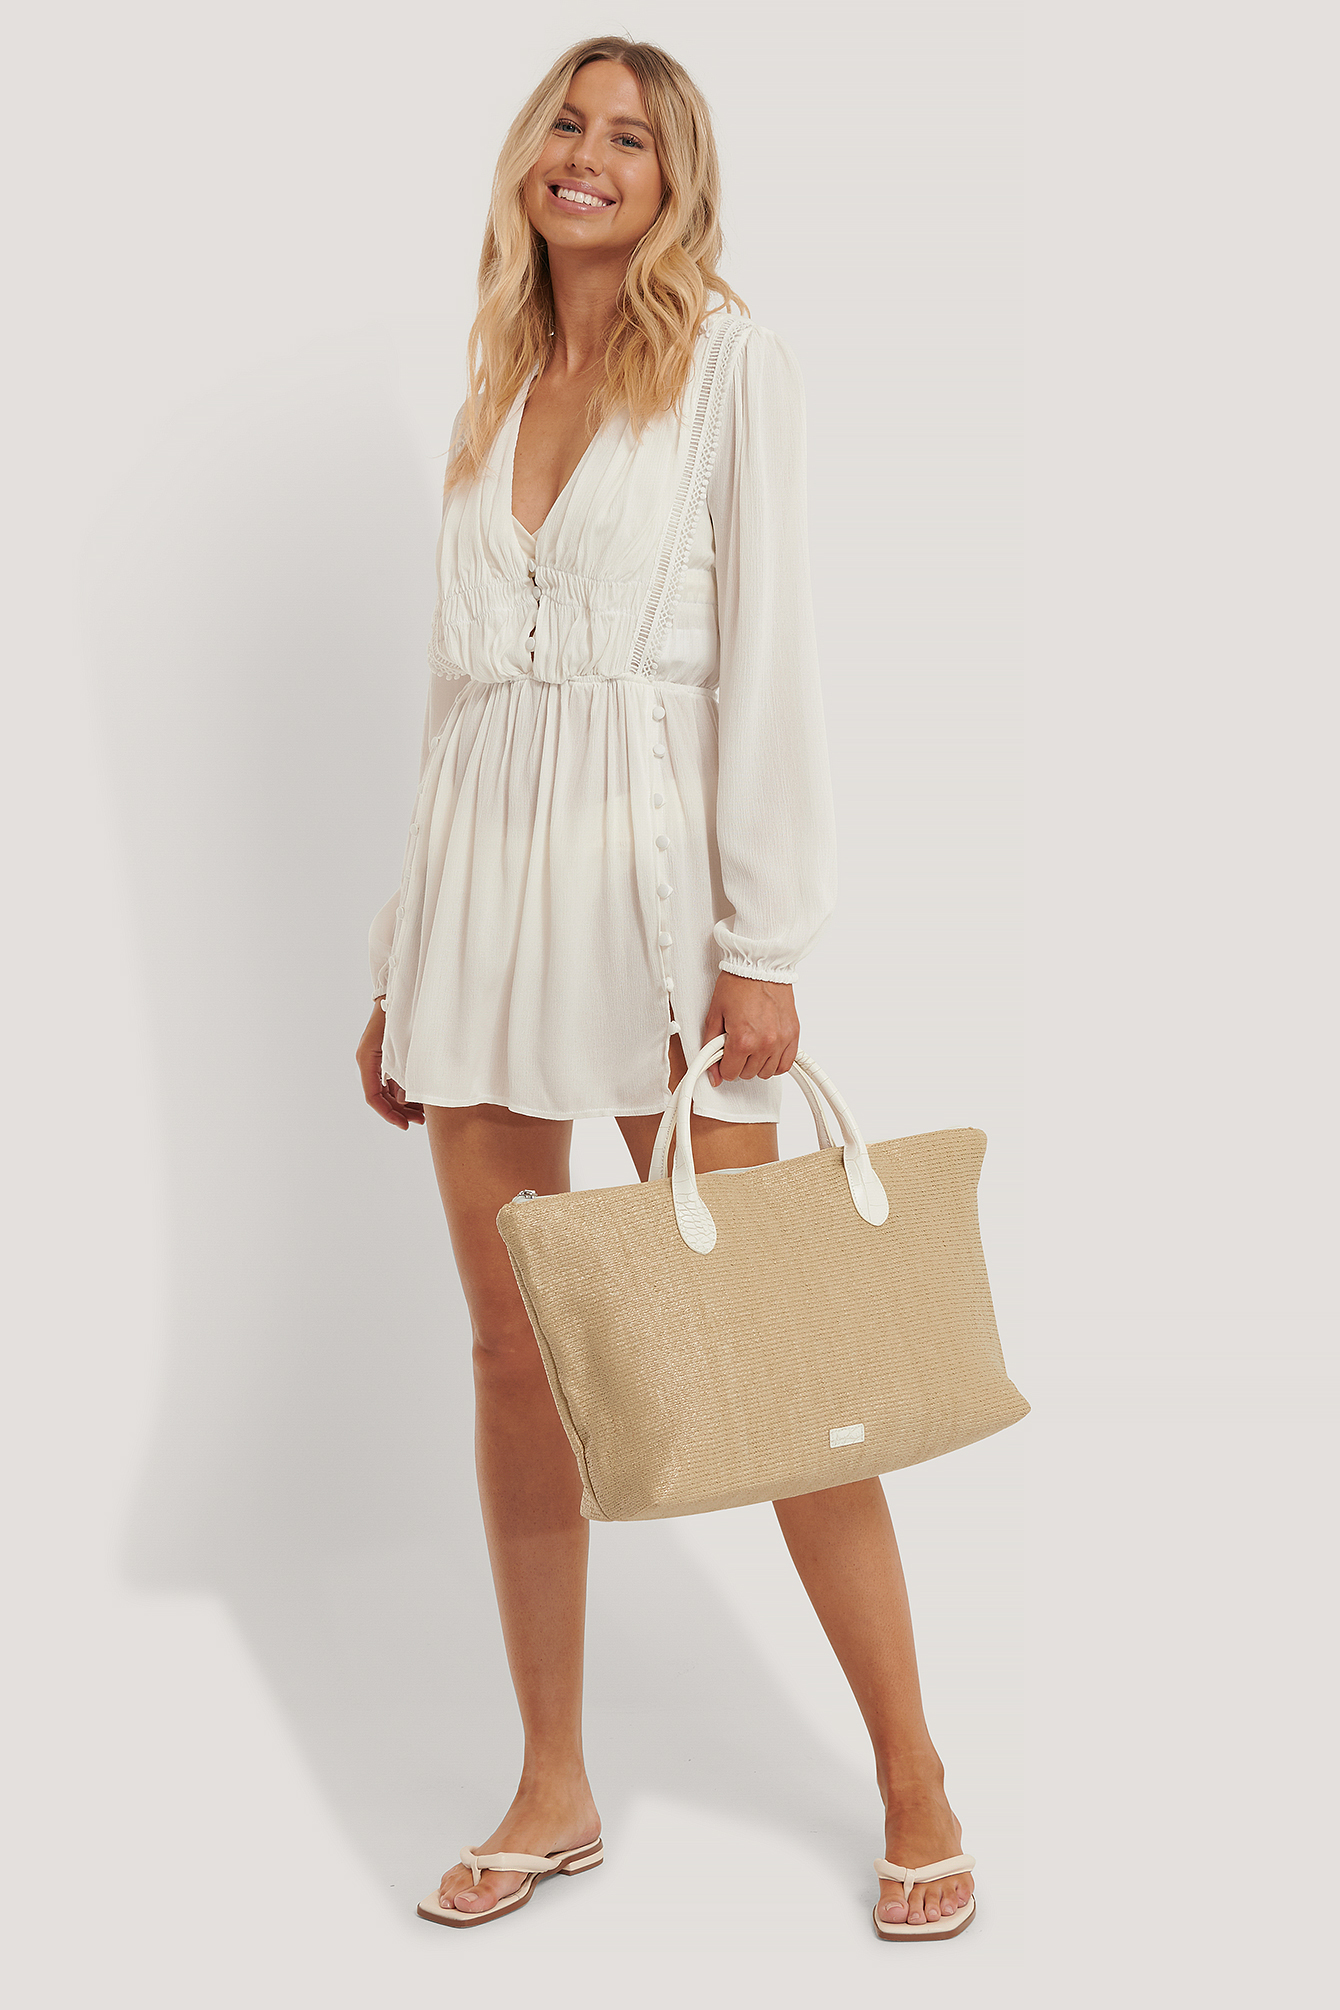 Beige Croc Handle Beach Bag